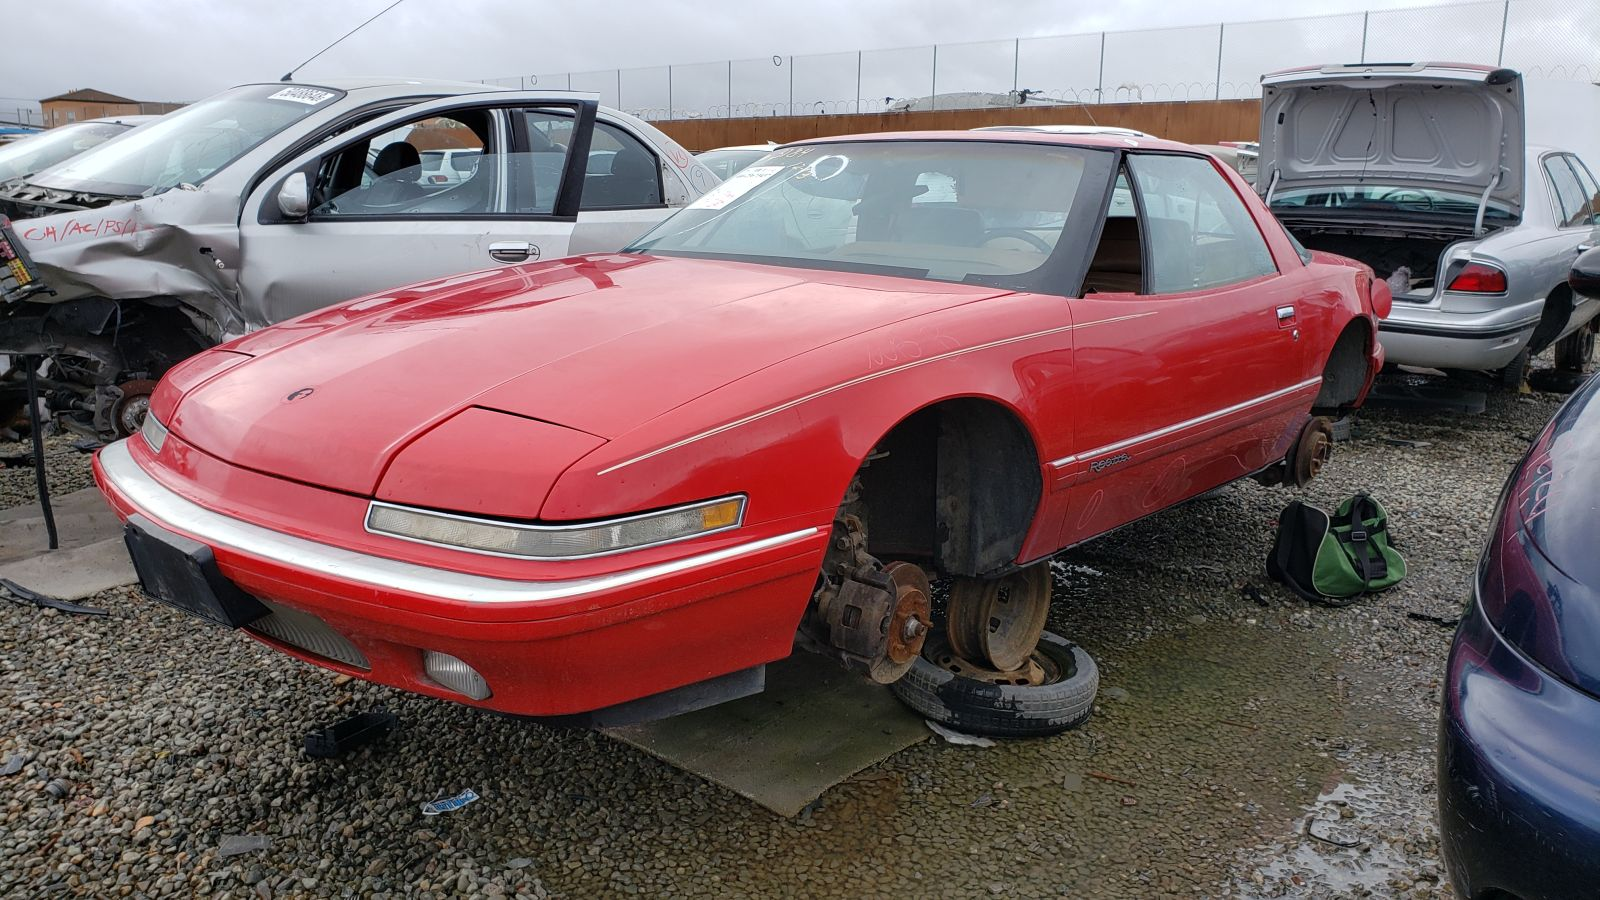 hight resolution of 1990 buick reatta in california wrecking yard lh front view 2019 murilee martin